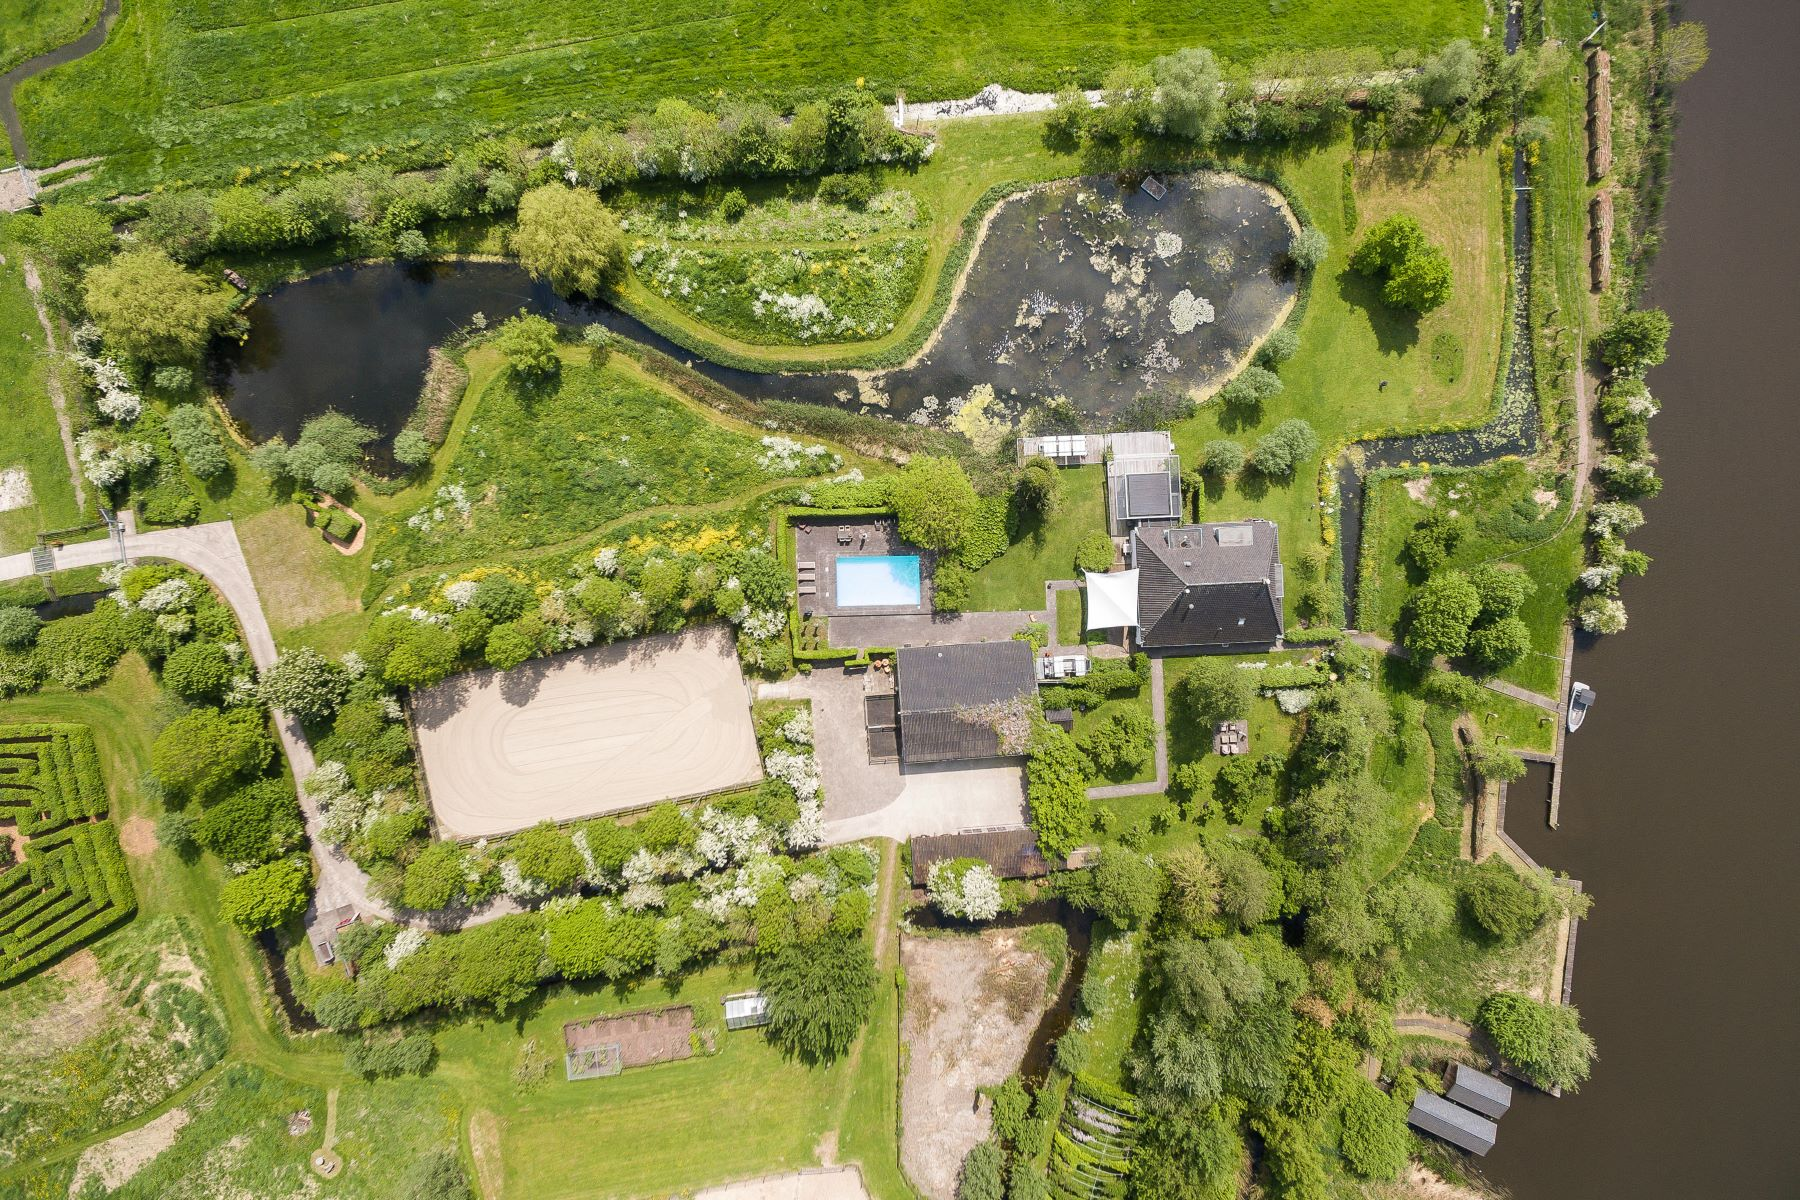 Single Family Home for Sale at Private sale Other North Holland, North Holland, Netherlands